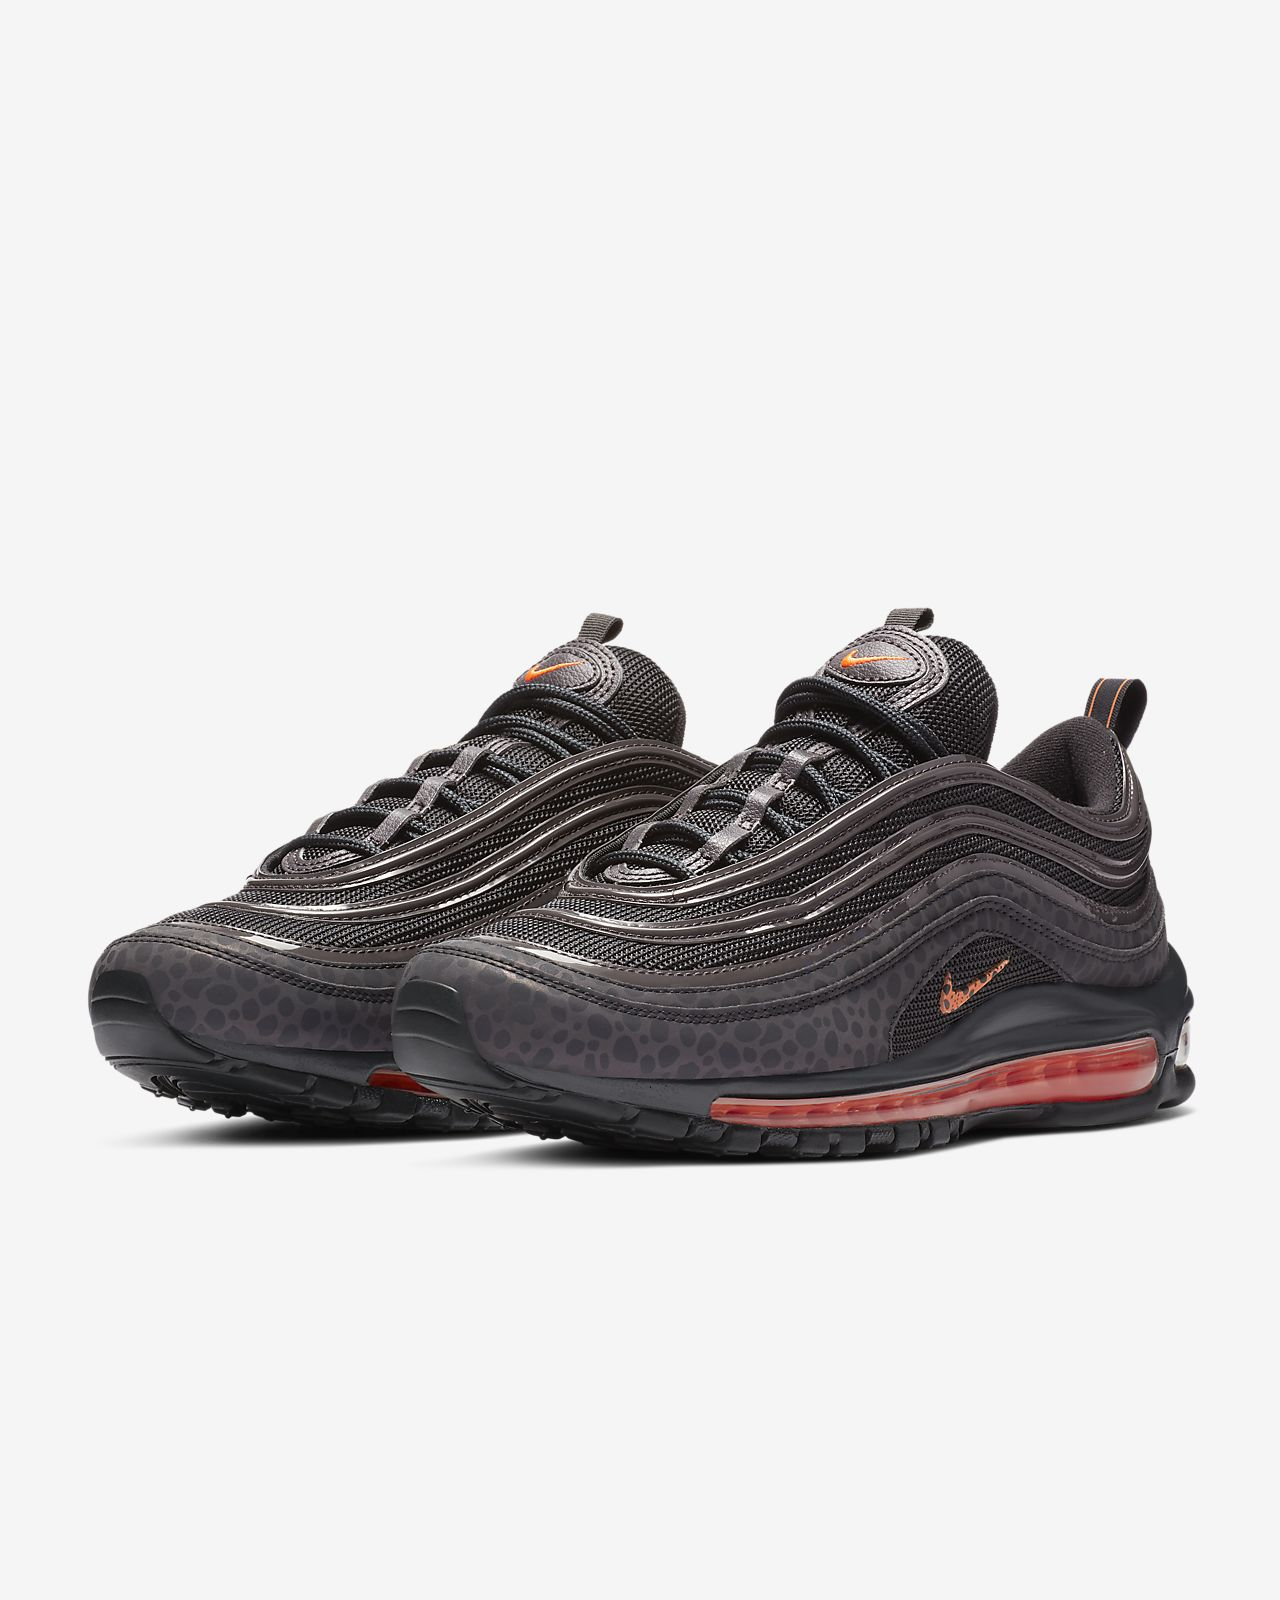 Chaussure Nike Air Max 97 SE Reflective pour Homme